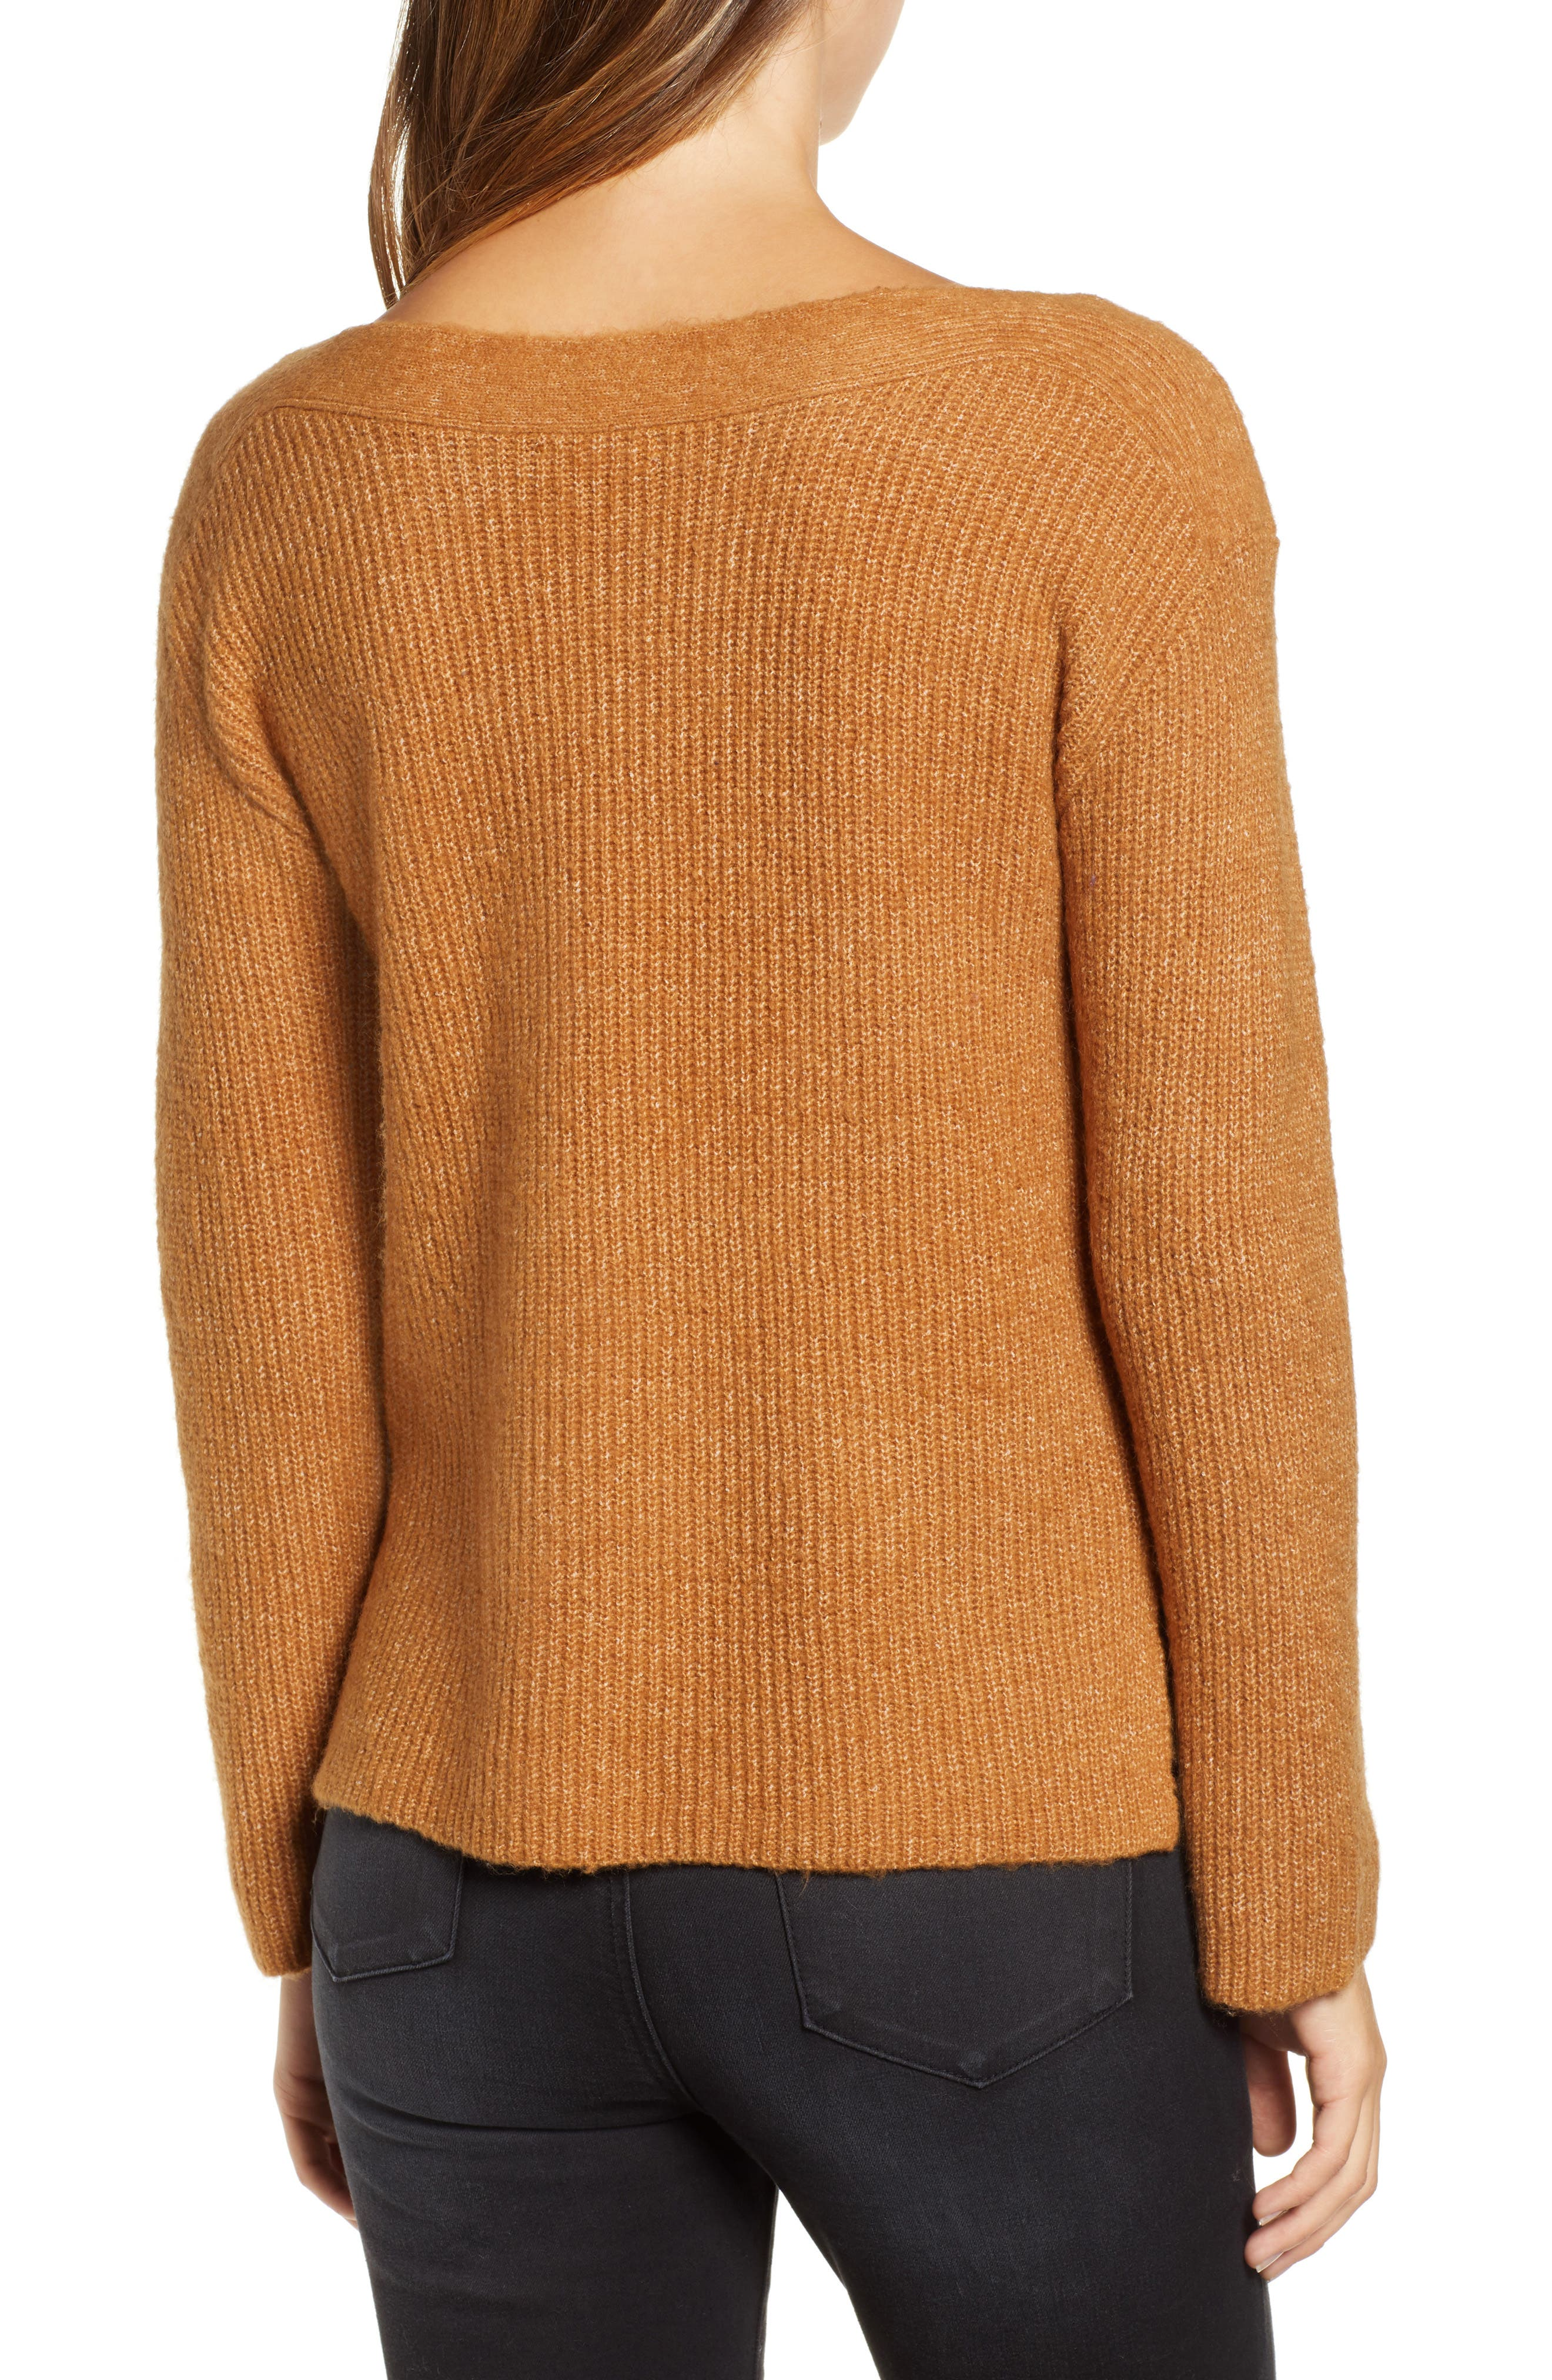 Cozy Femme Pullover Sweater,                             Alternate thumbnail 2, color,                             TAN DALE